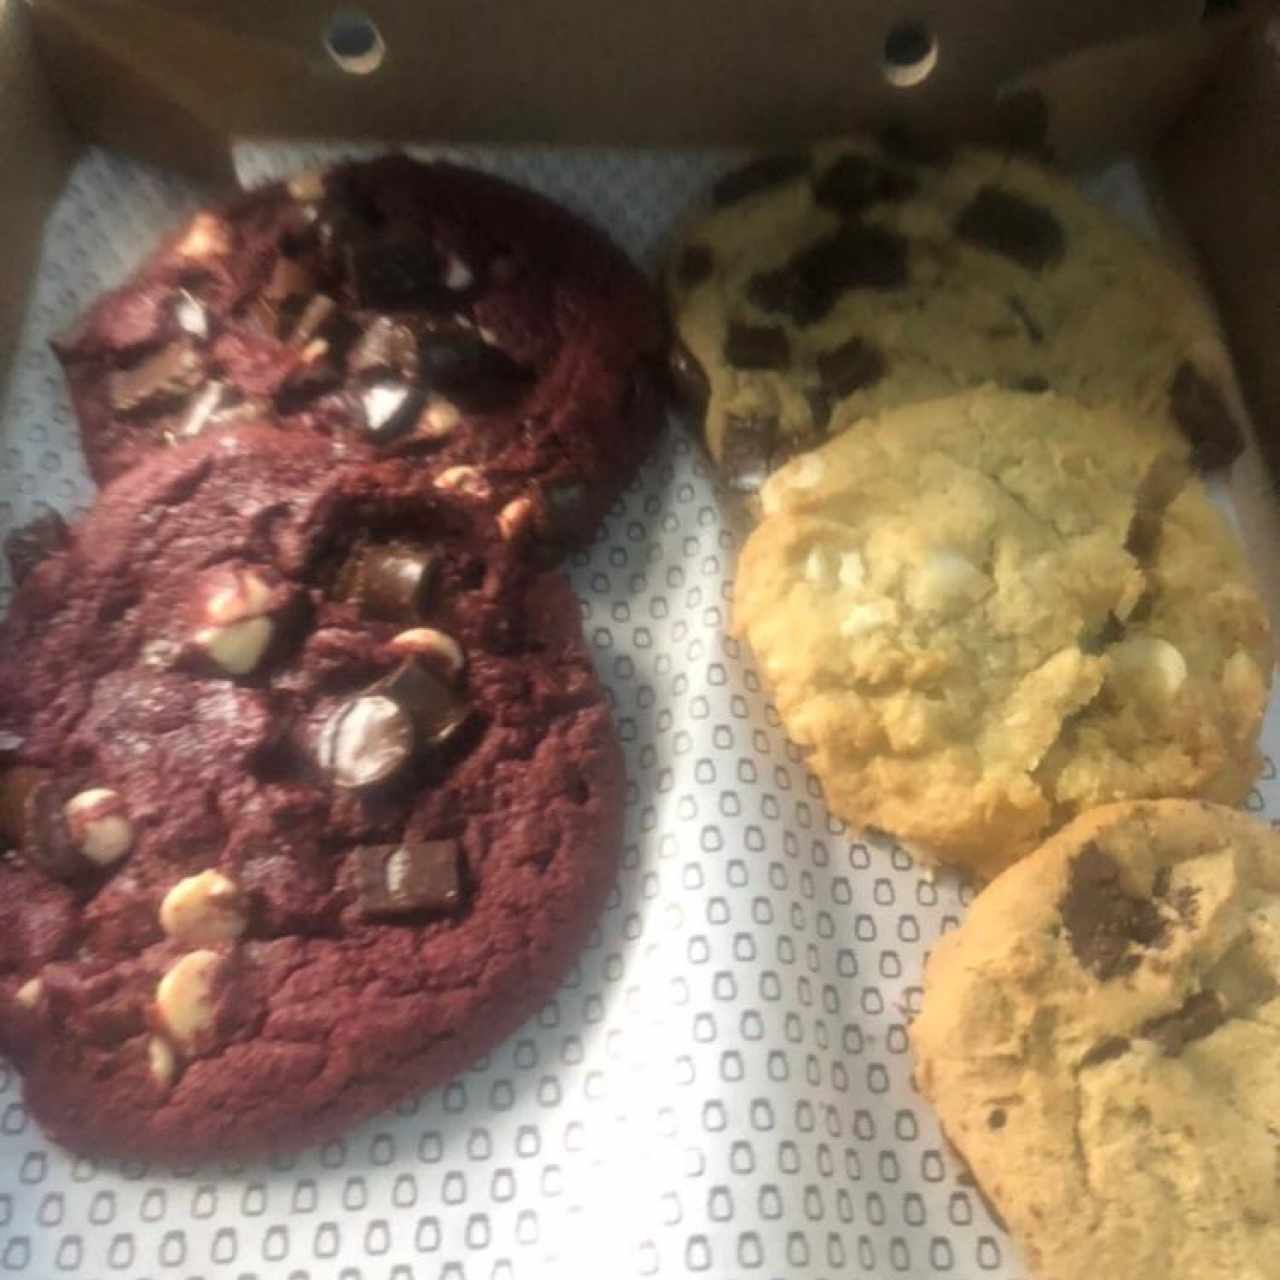 Red Velvet, Chocolate Supreme, Macadamia y Chocolate Chunk